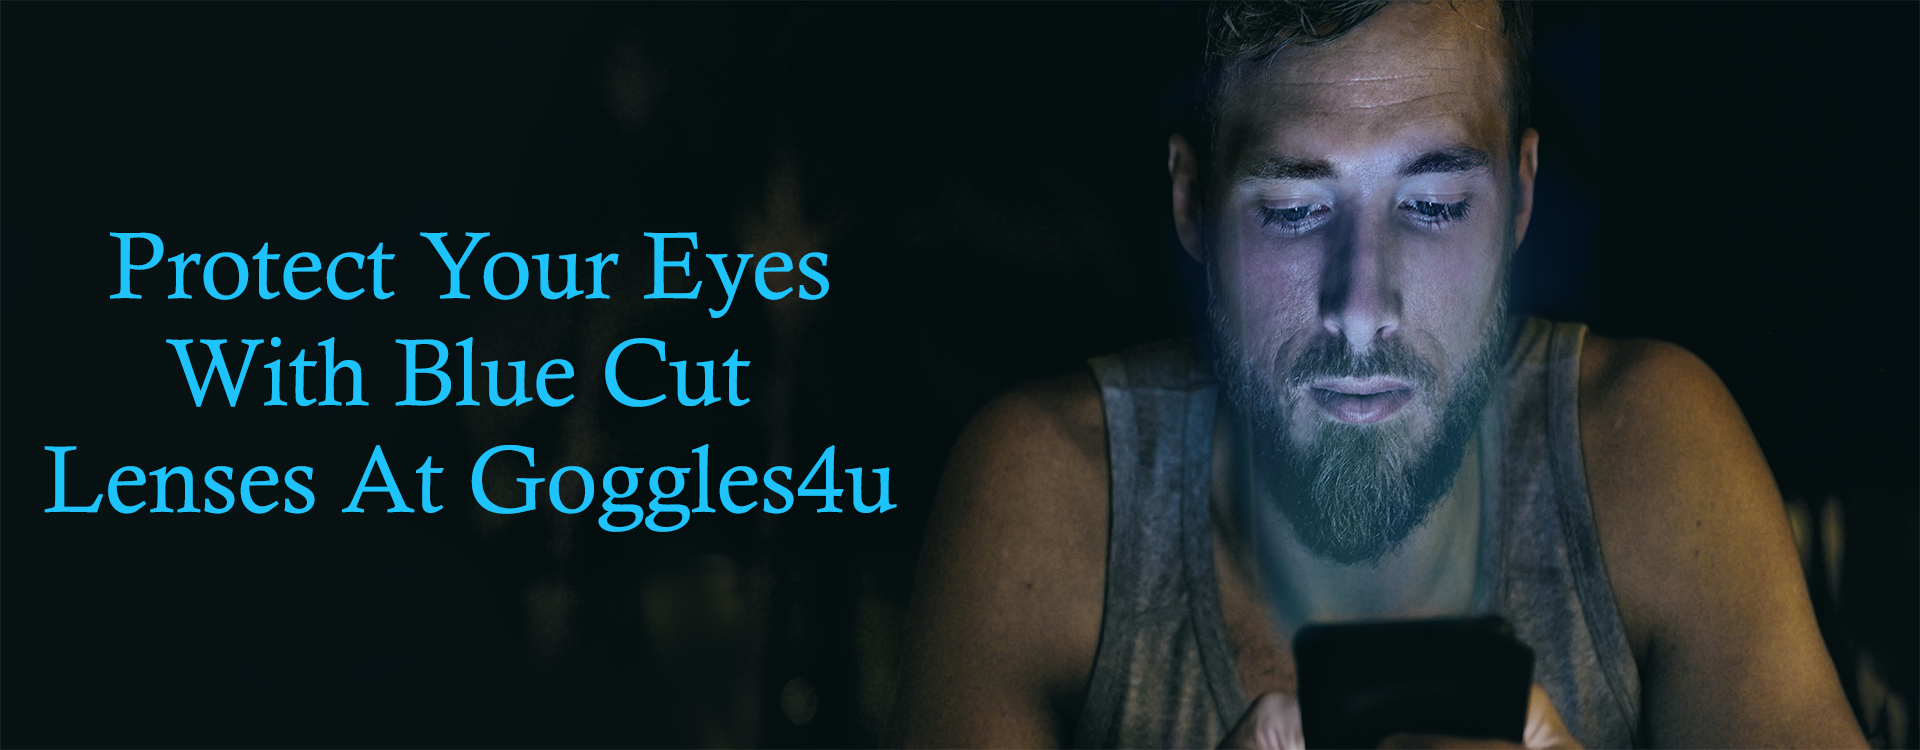 Protect Your Eyes With Blue Cut Lenses at Goggles4U